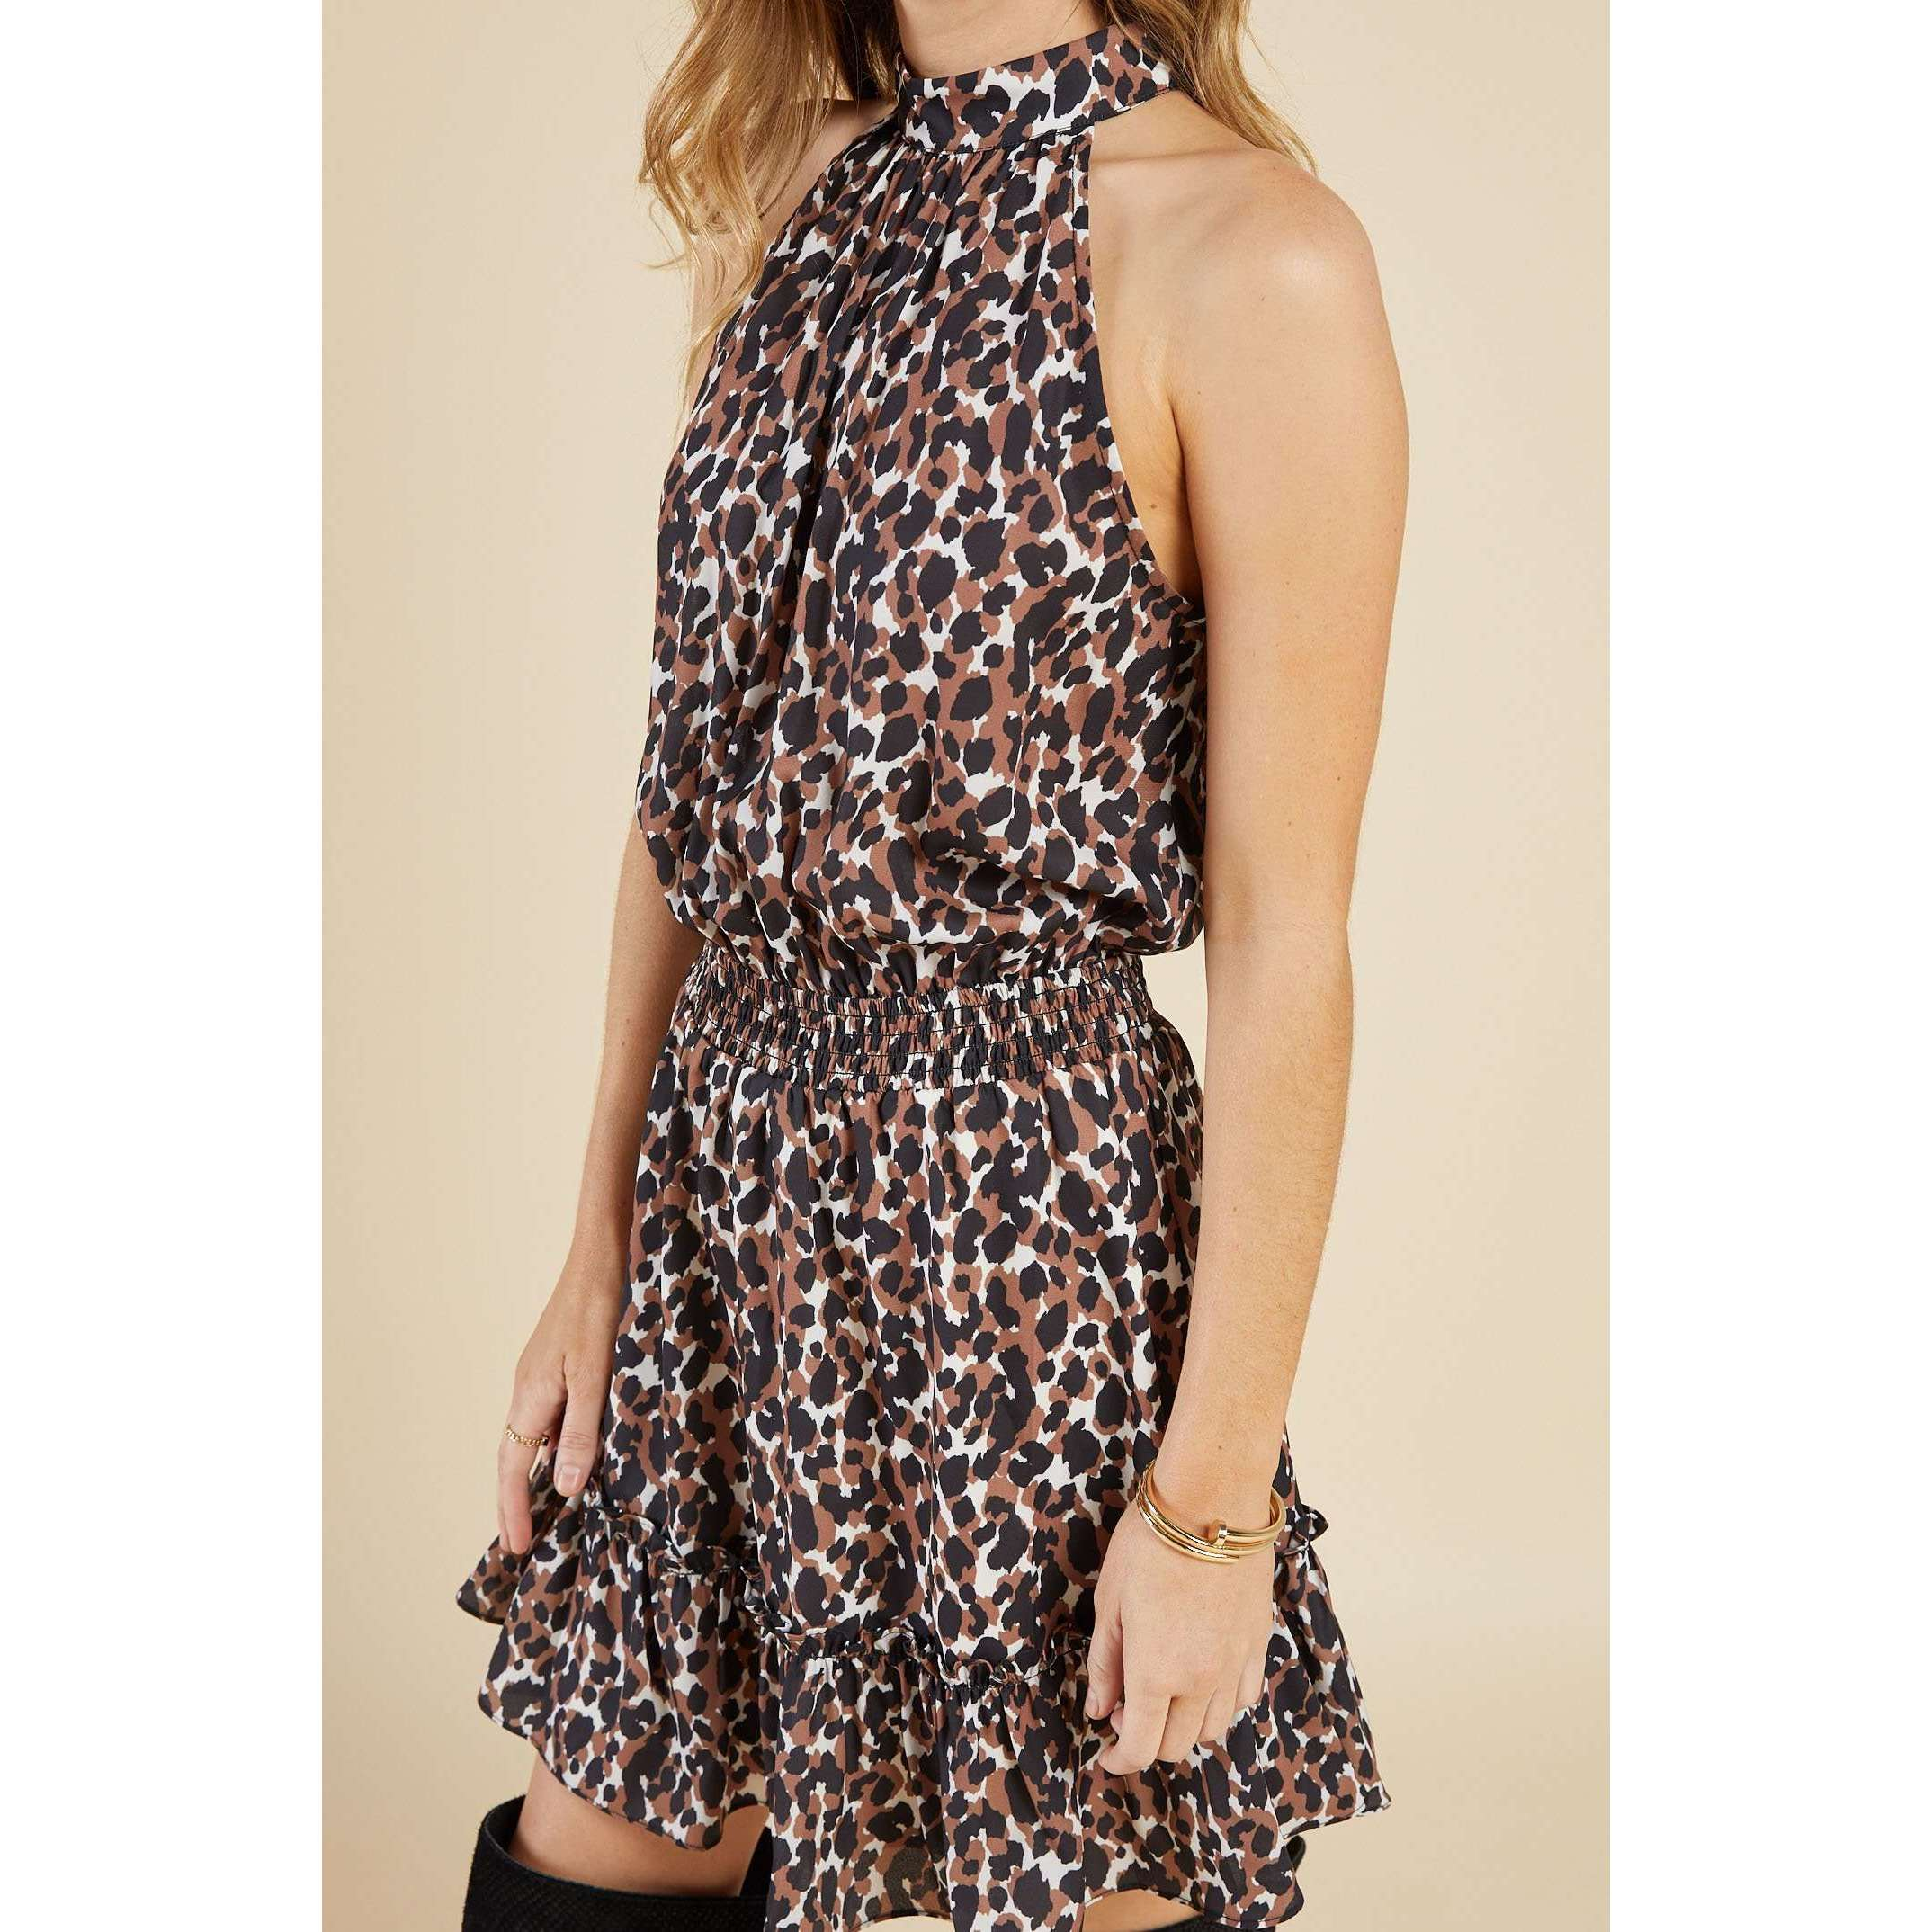 8.28 Boutique:Sadie & Sage,Sadie & Sage Animalia Smocked Waist Dress,Dress